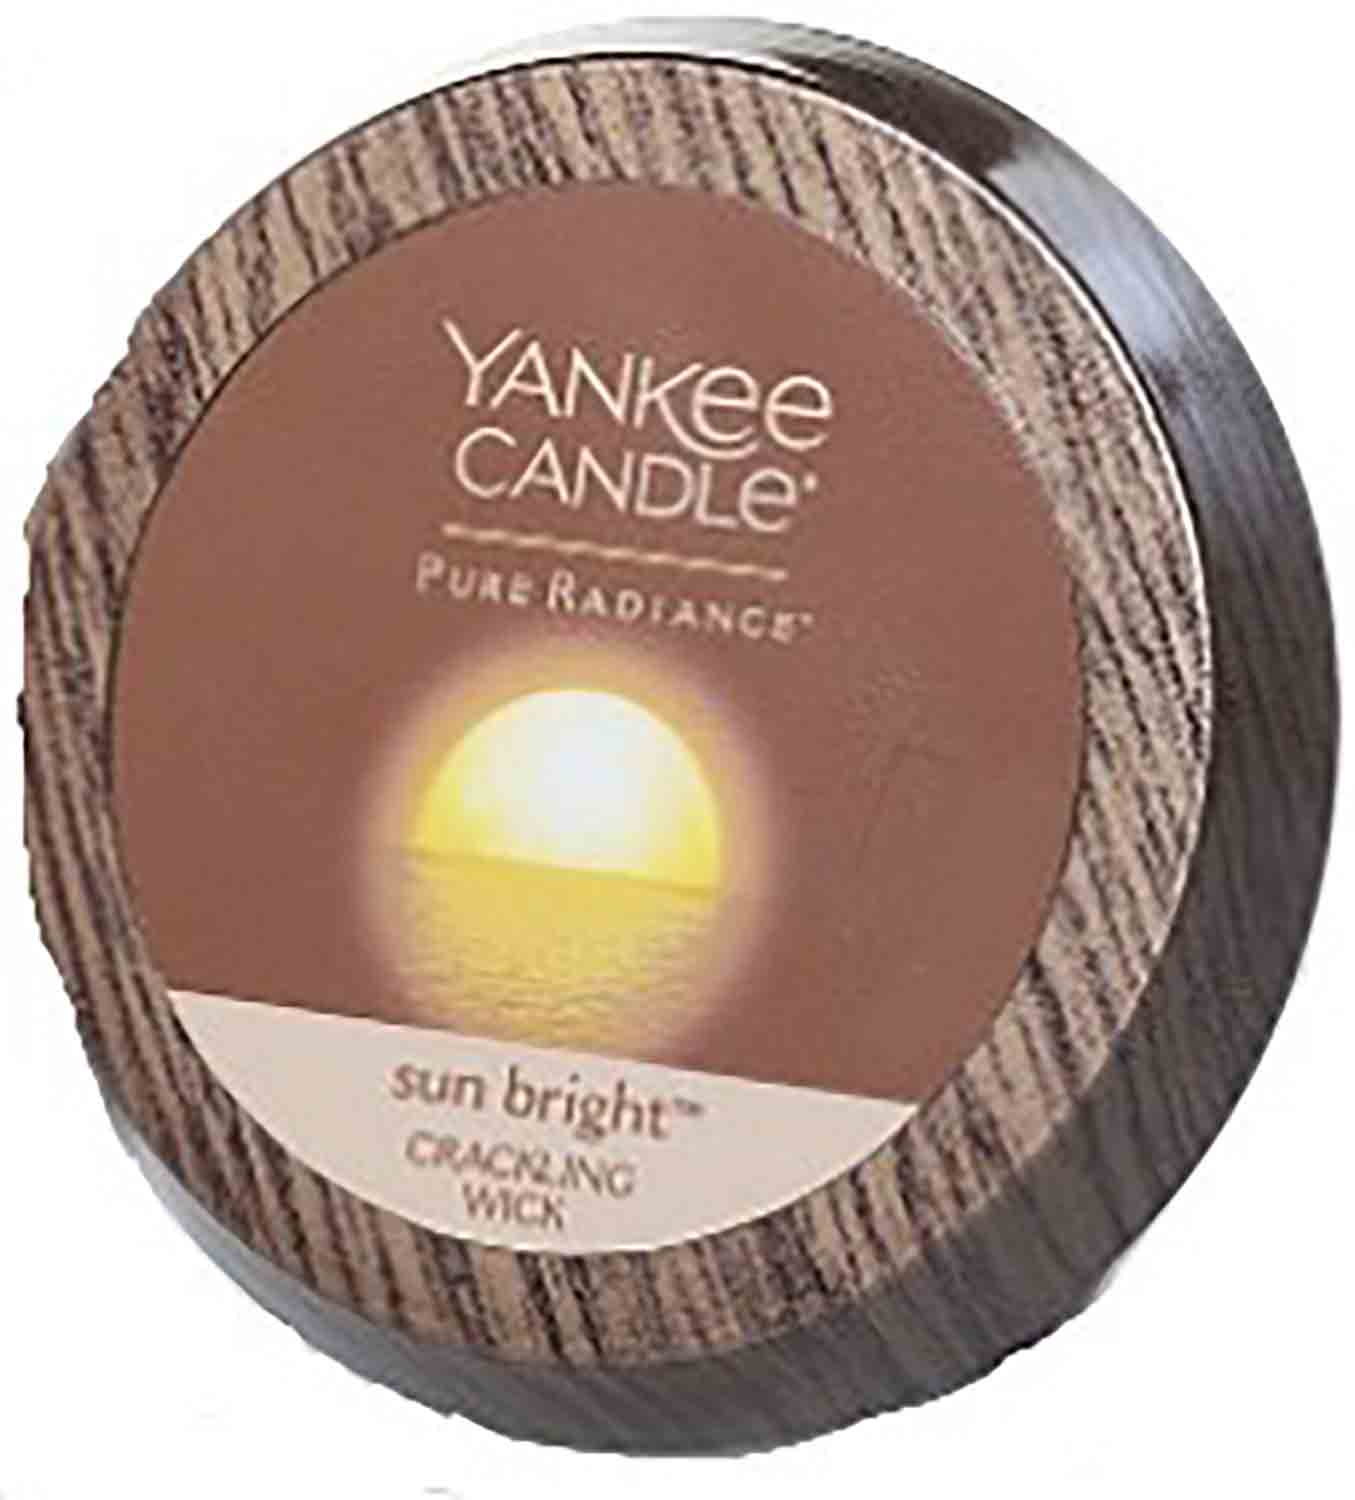 Crumble vosk Yankee Candle Sun Bright Pure Radiance USA 22 g